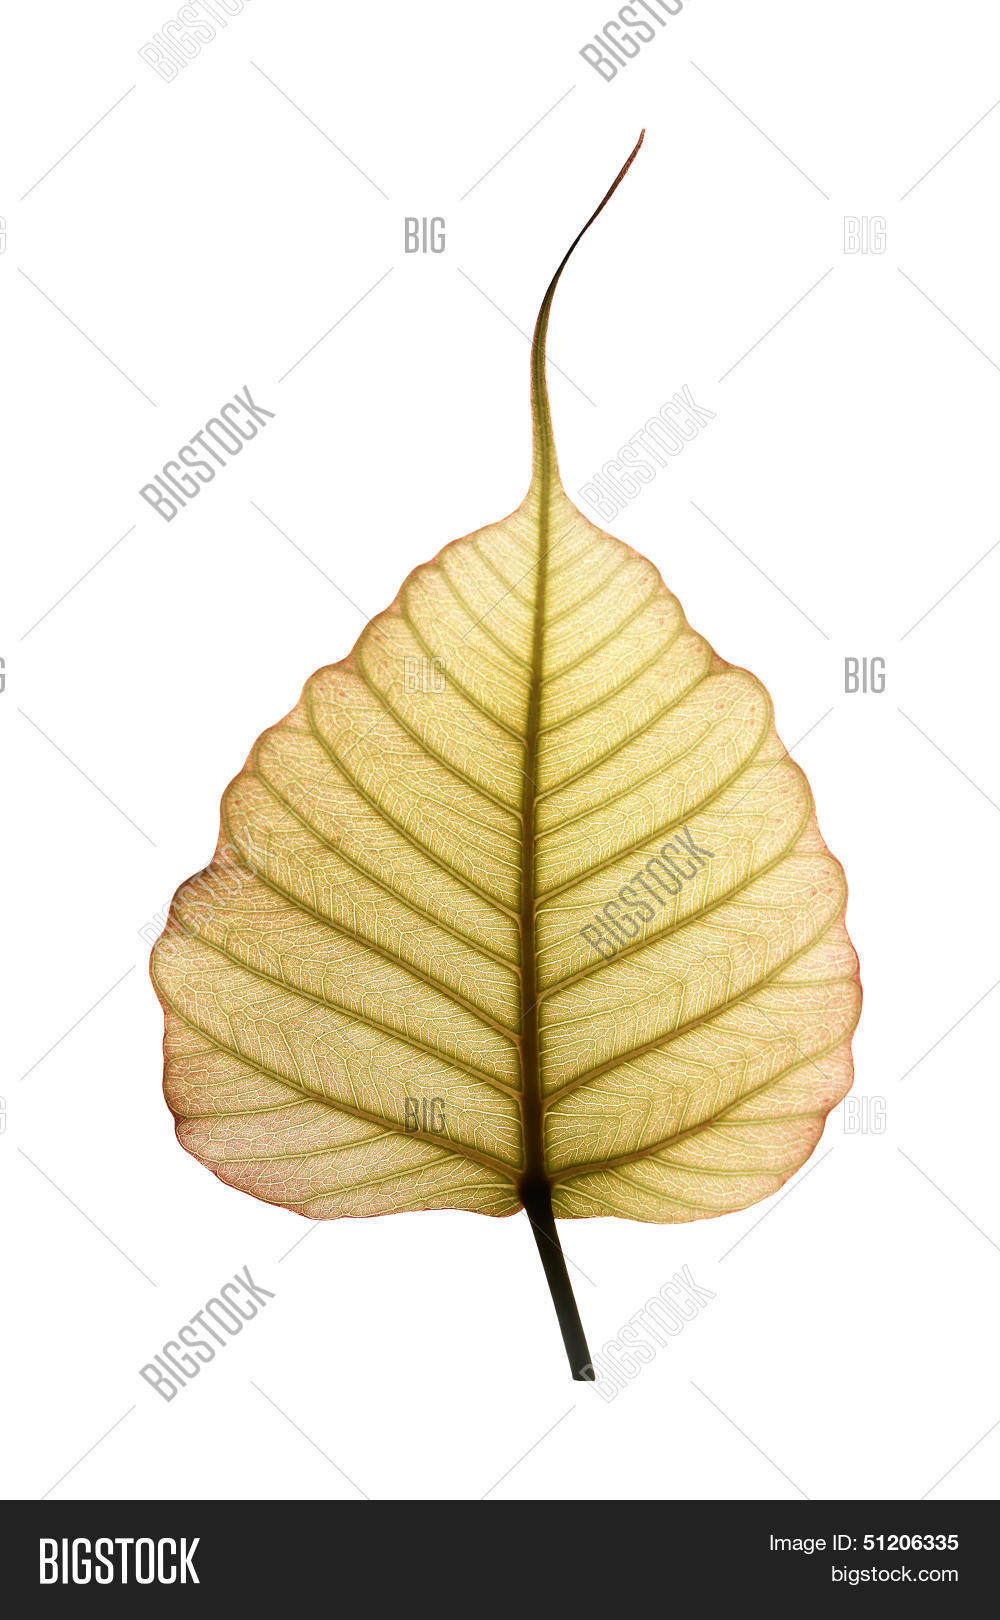 Heart Shaped Peepal Pipal Tree Leaf Image Photo Bigstock